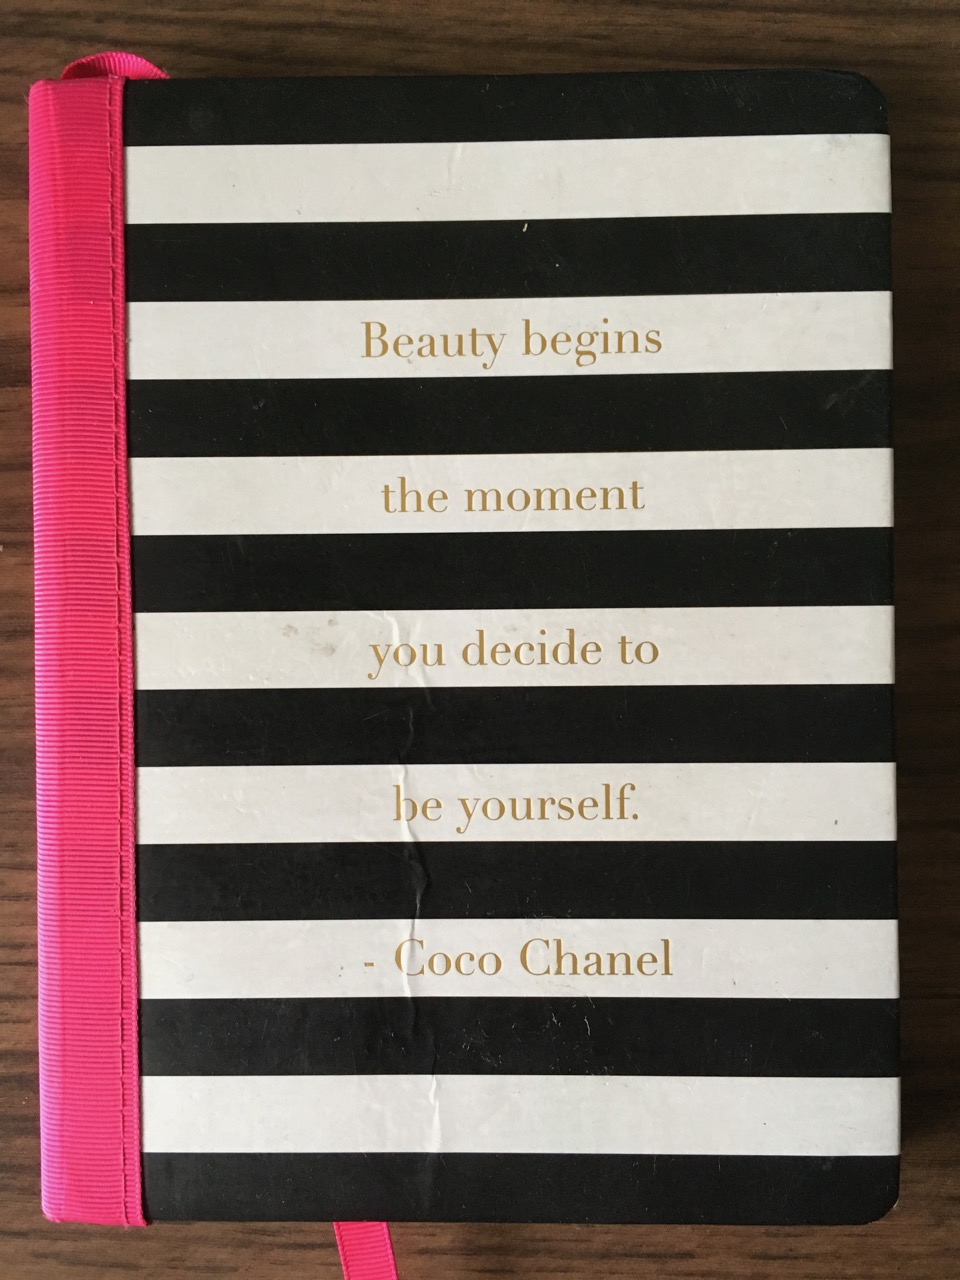 Beauty begins the moment you decide to be yourself. — Coco Chanel